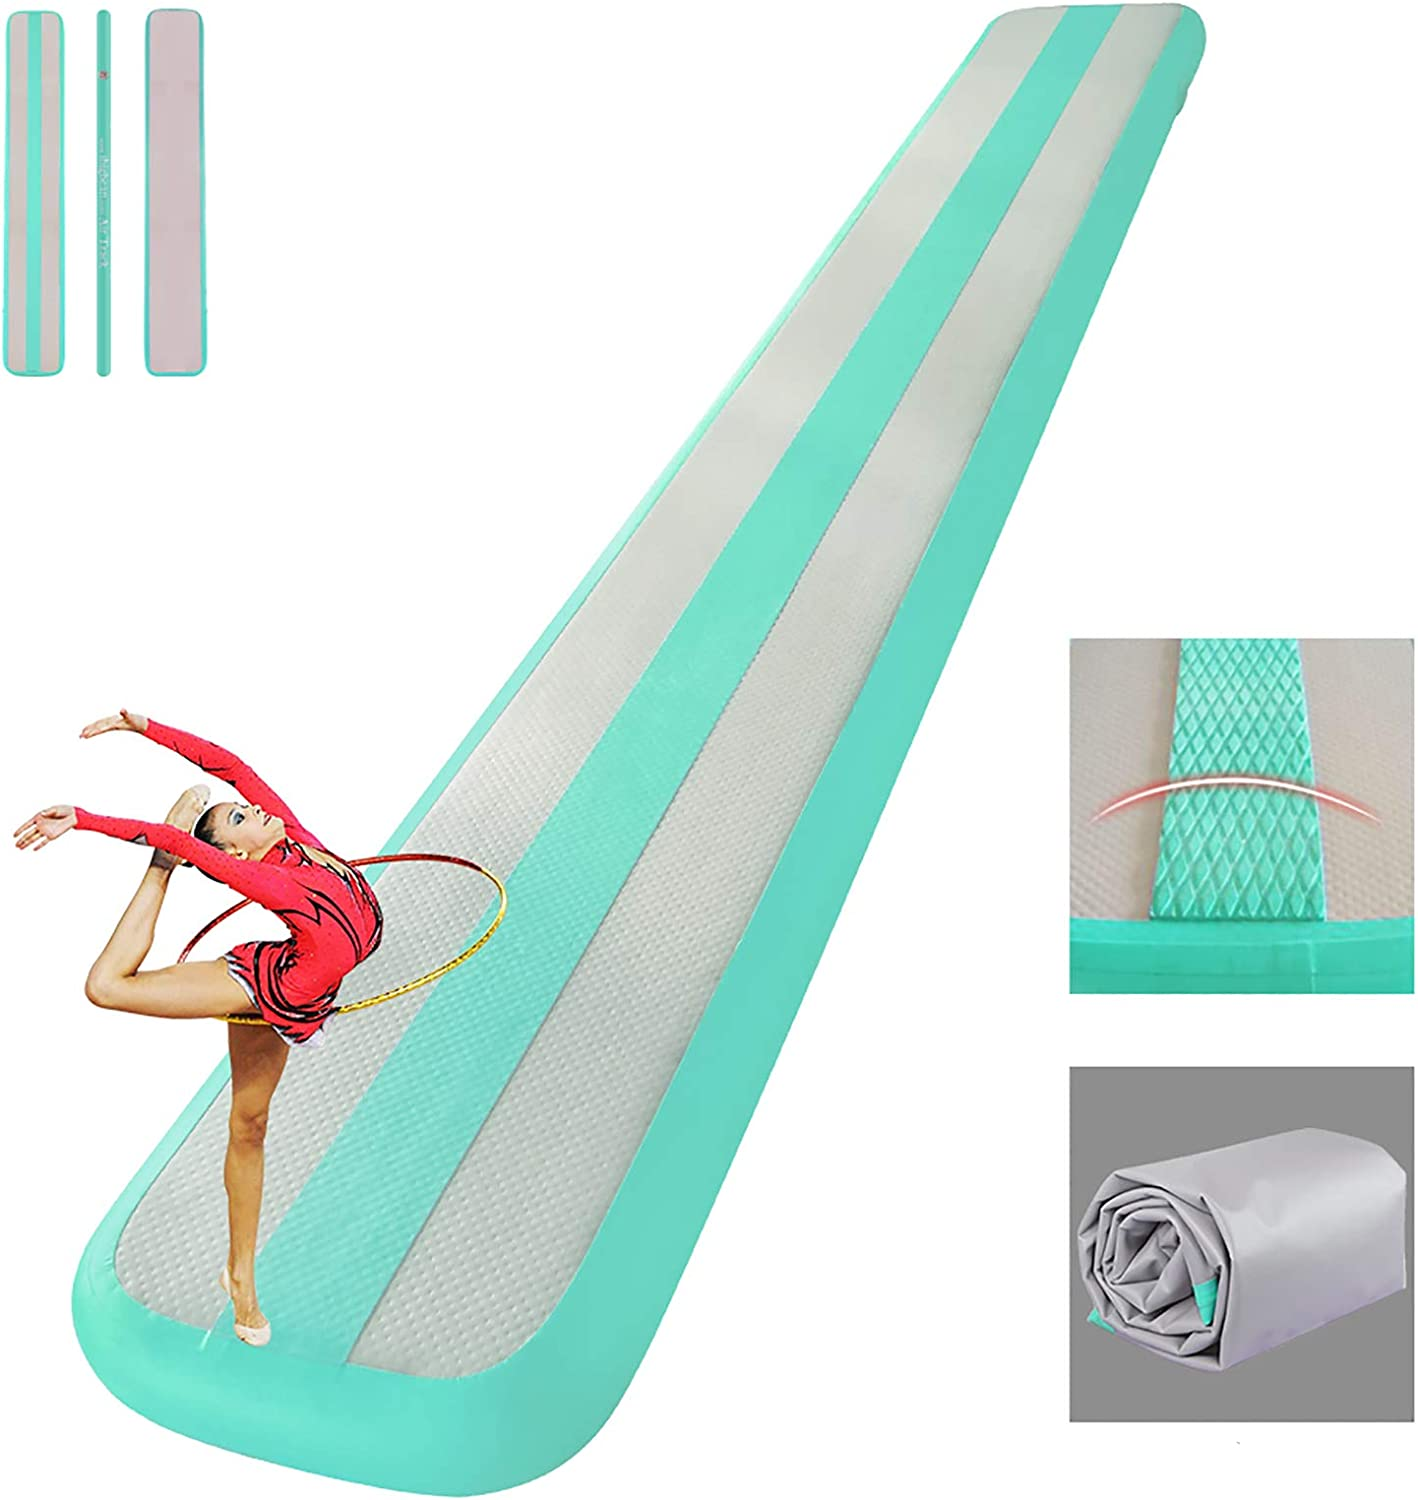 ibigbean Inflatable Balance Beams Gymnastics Mats with EVA Middle Line for Home Gym Training